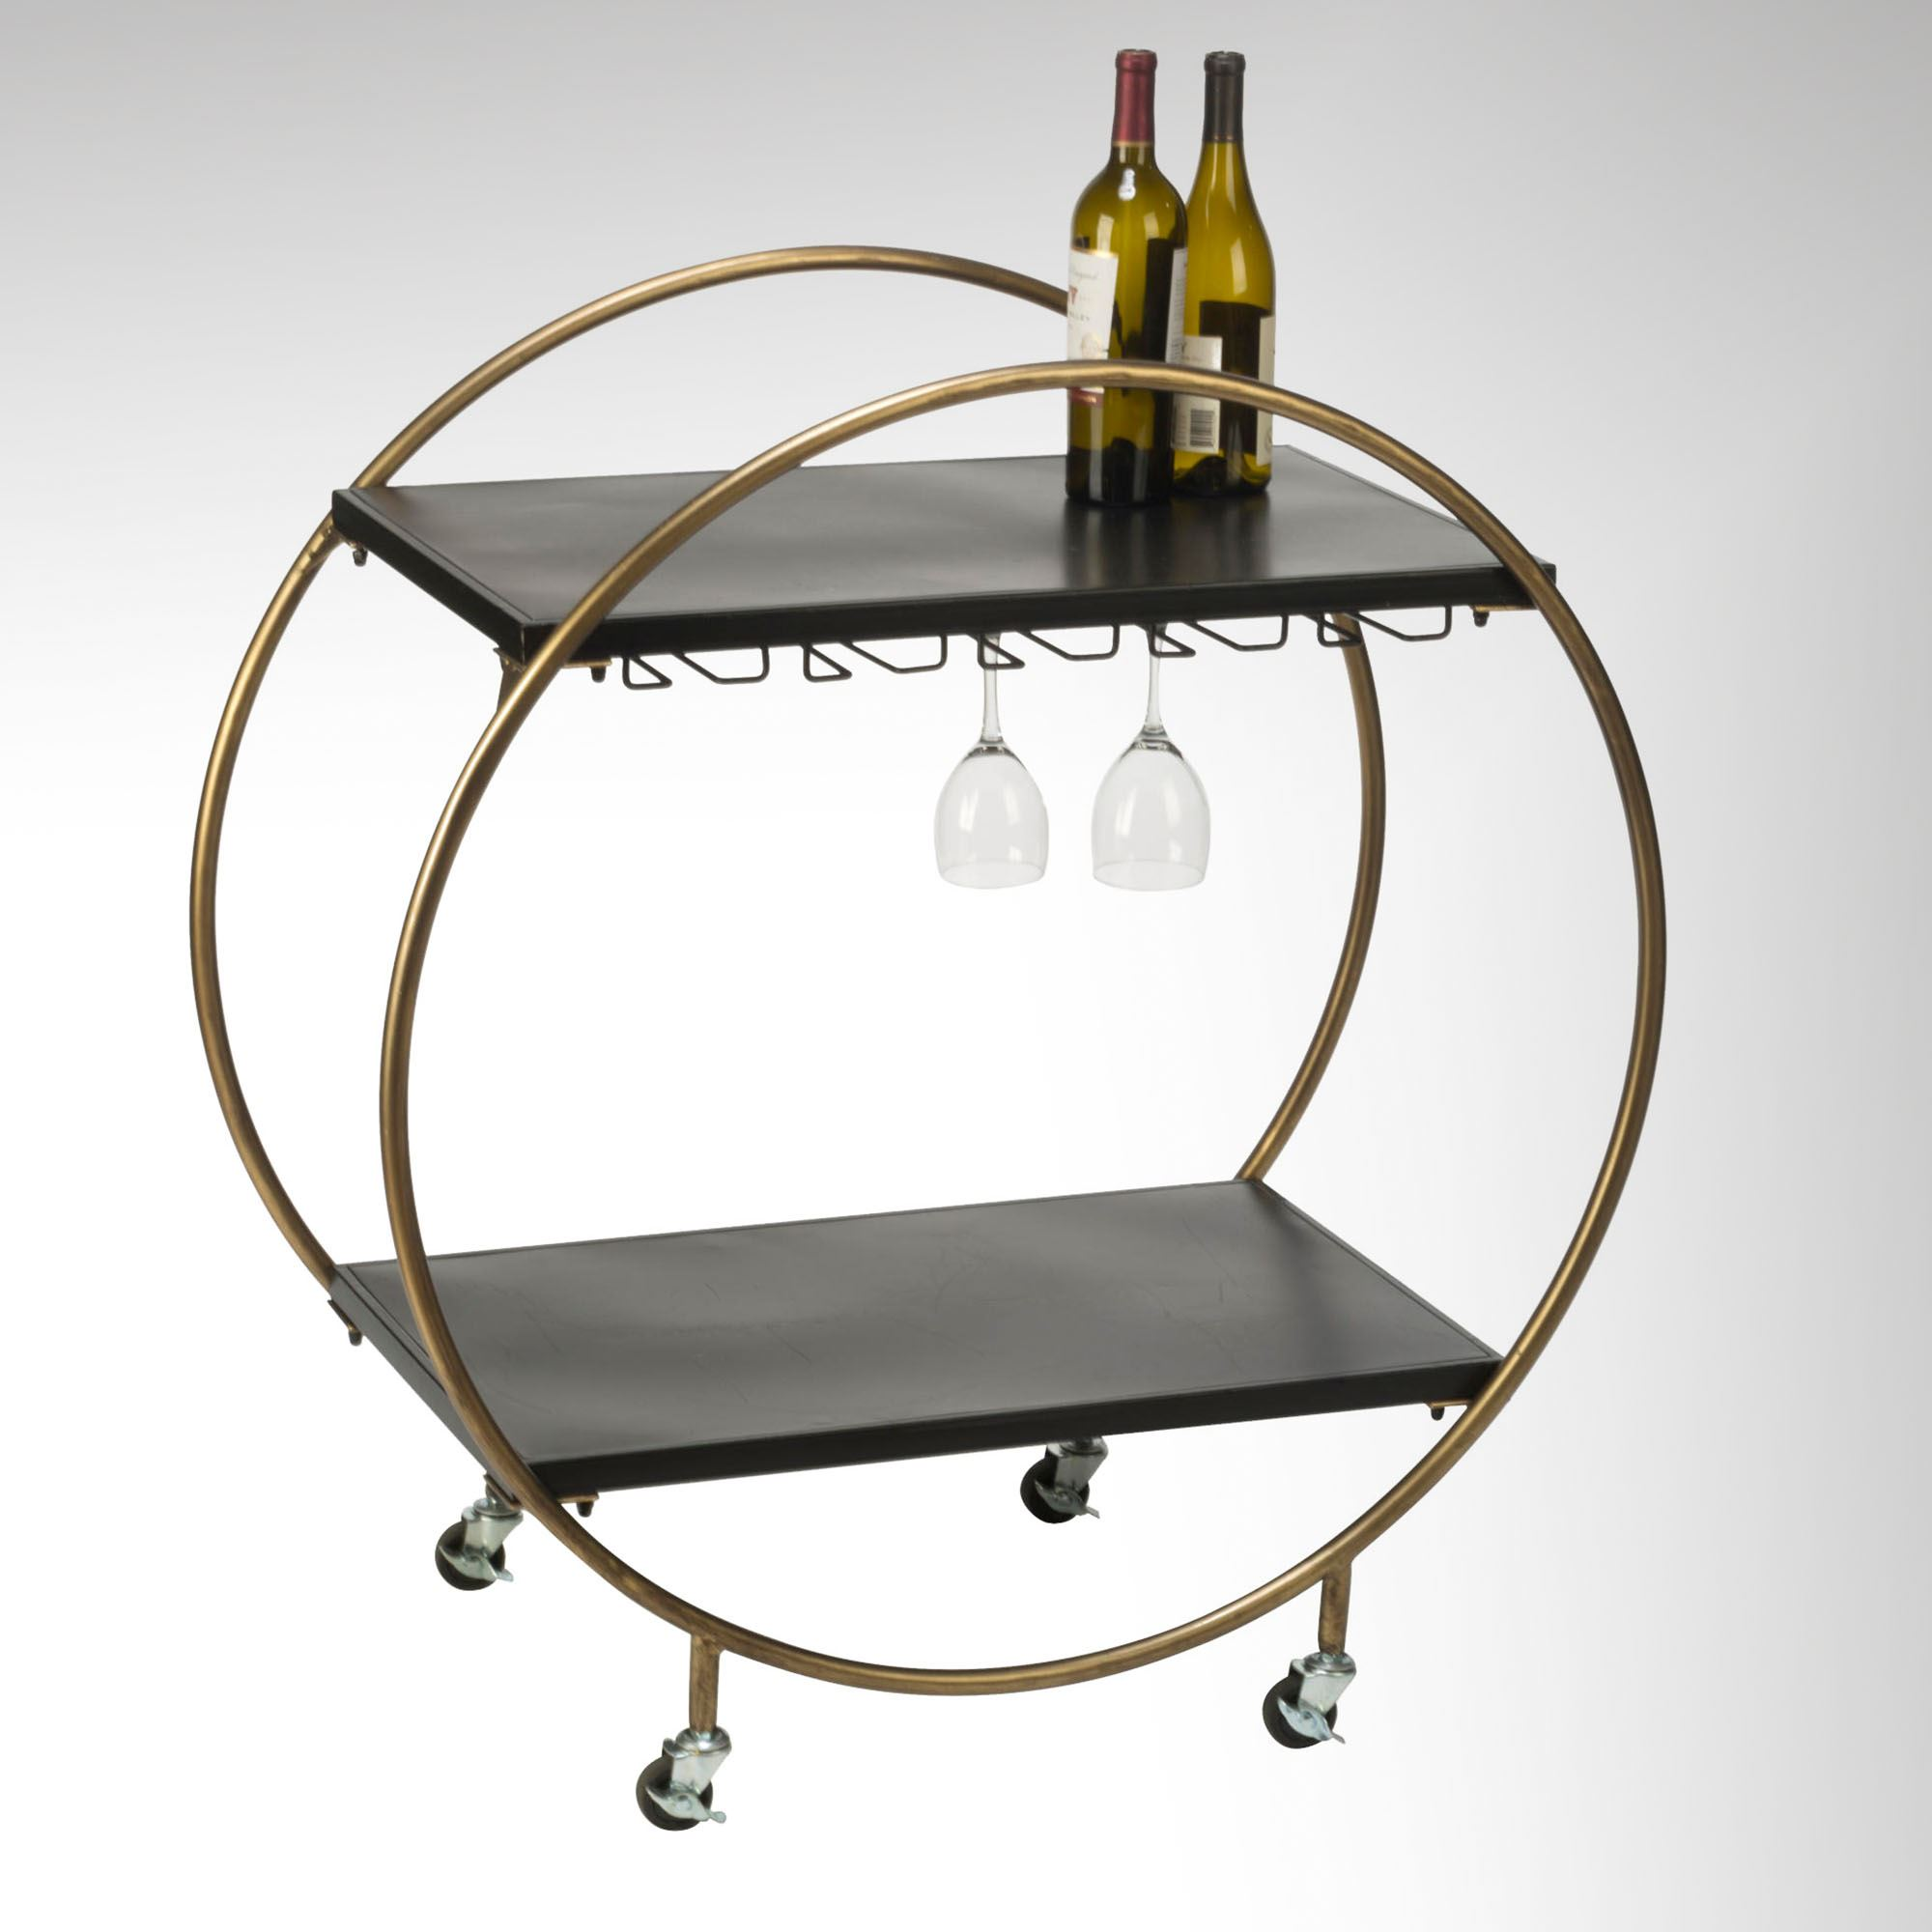 kadience rolling wine bar cart with stemware rack and locking casters. Black Bedroom Furniture Sets. Home Design Ideas